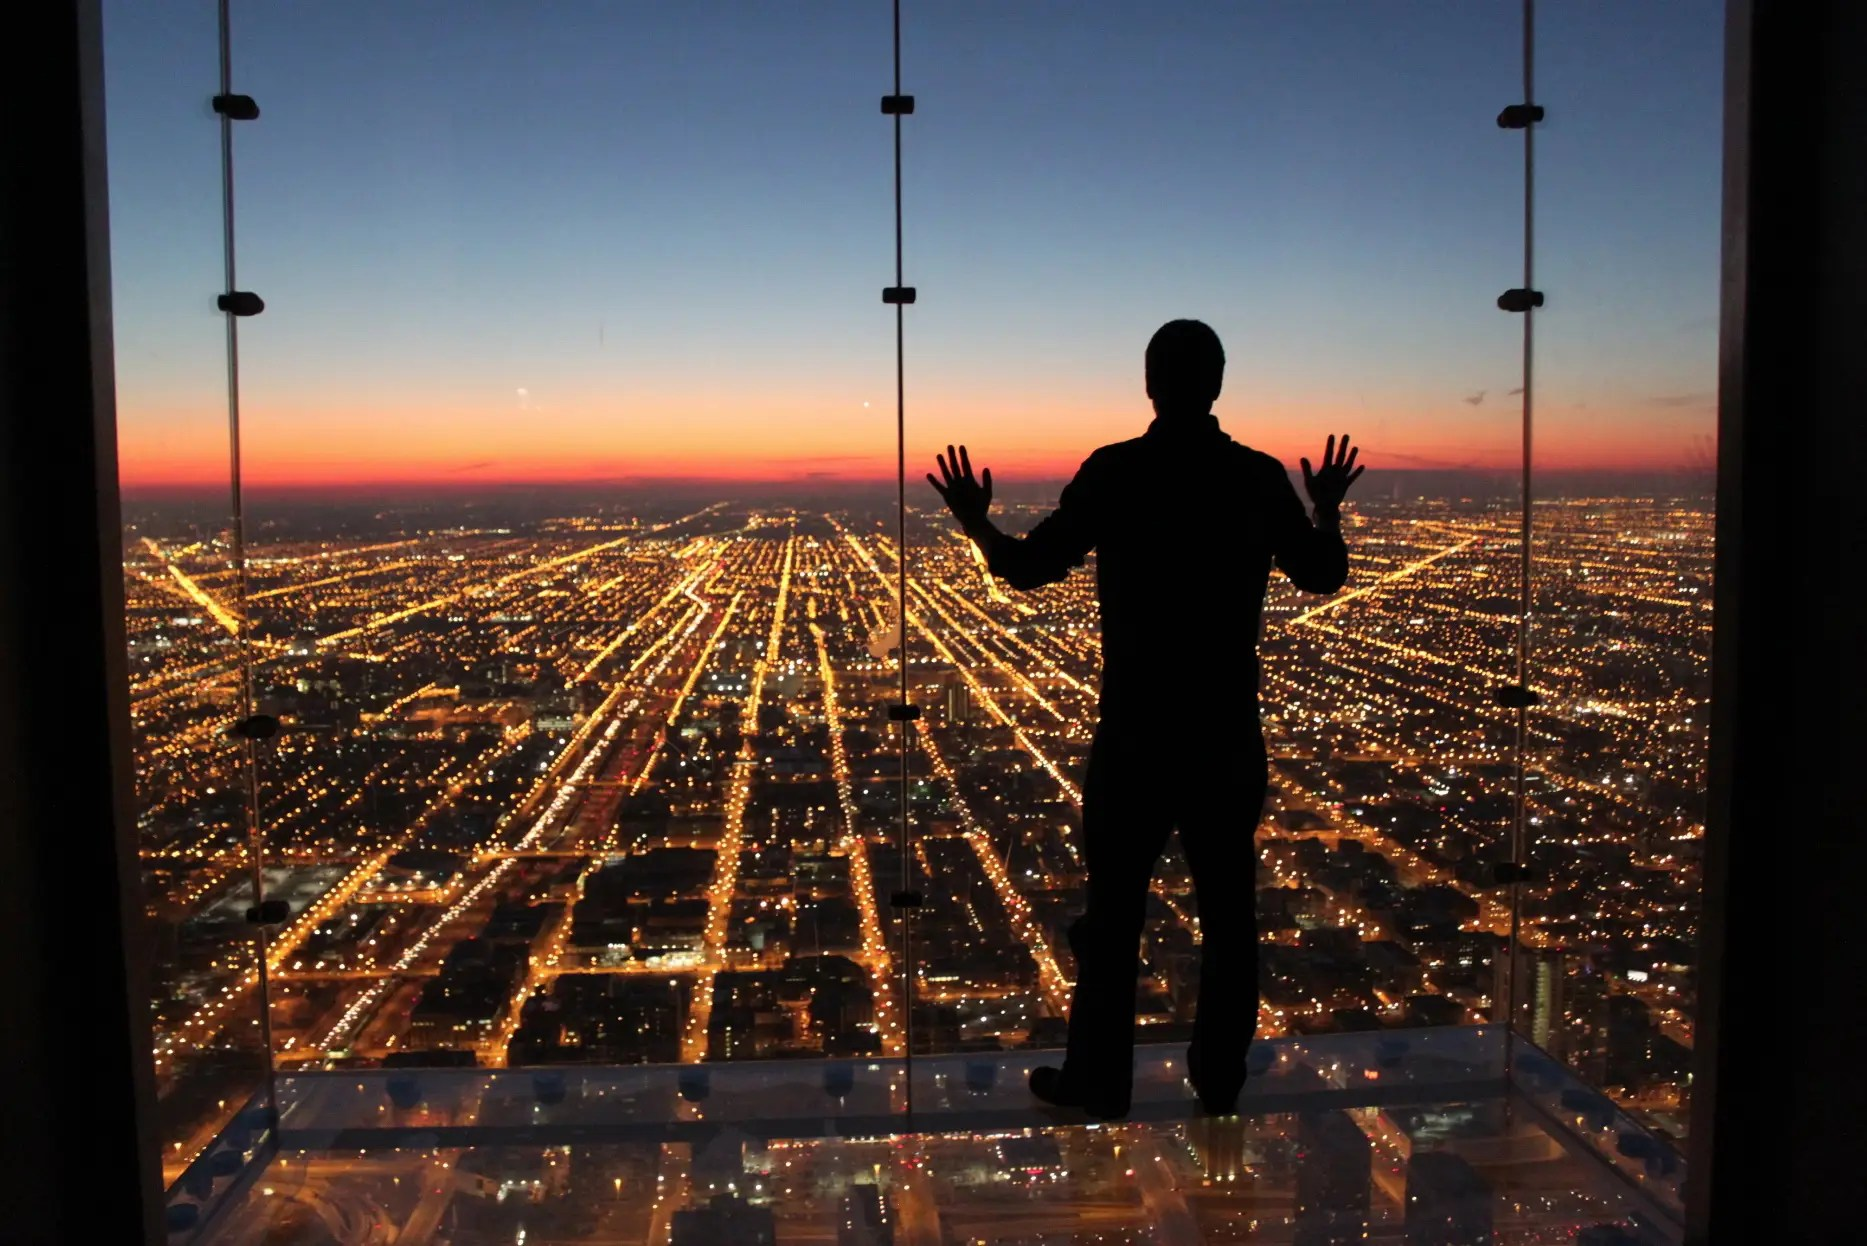 A sunset at the skydeck of the Willis Tower in Chicago, Illinois.